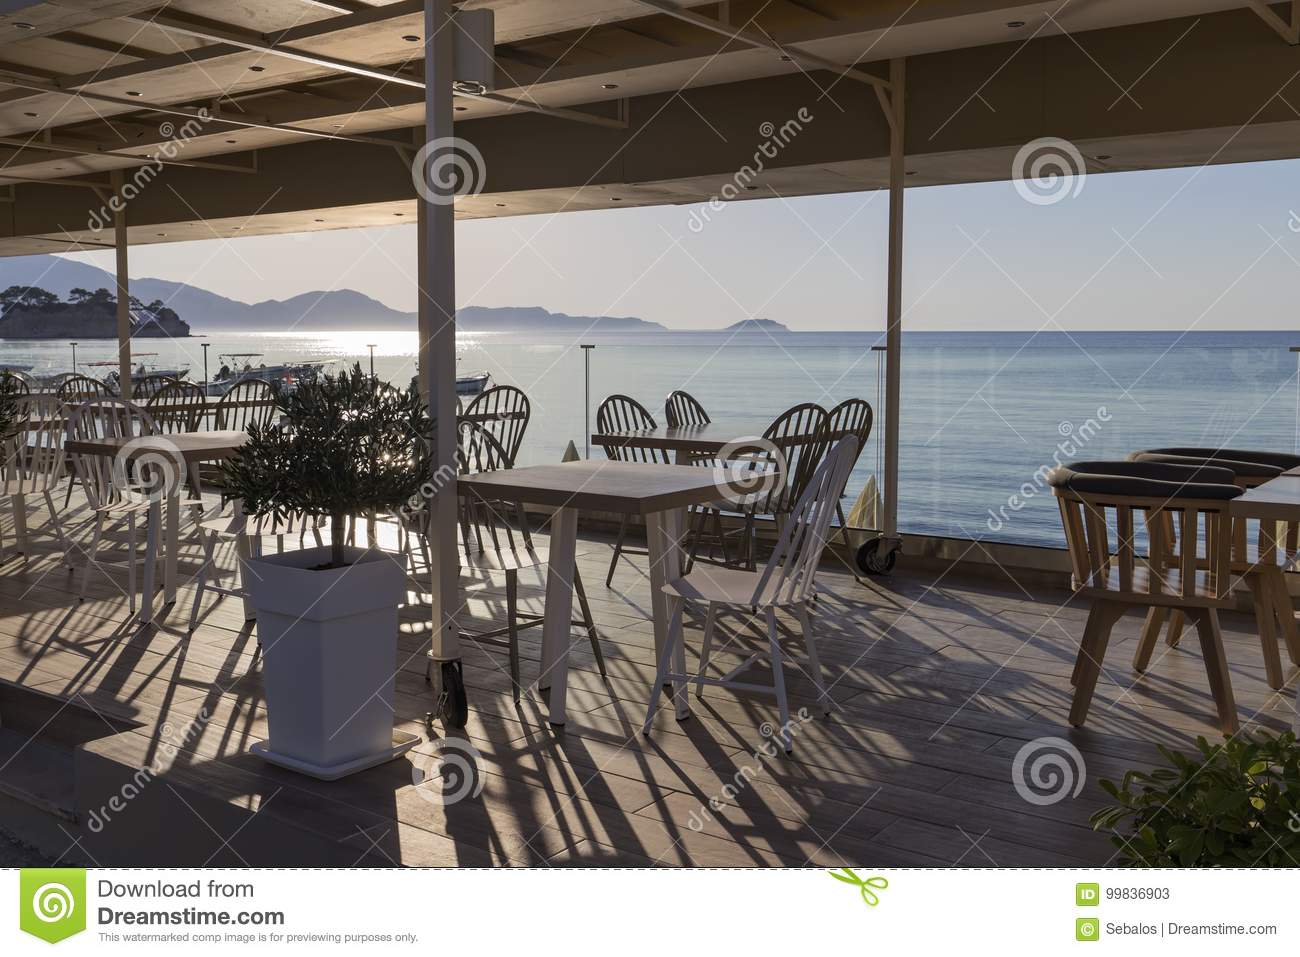 Terace with wooden furniture